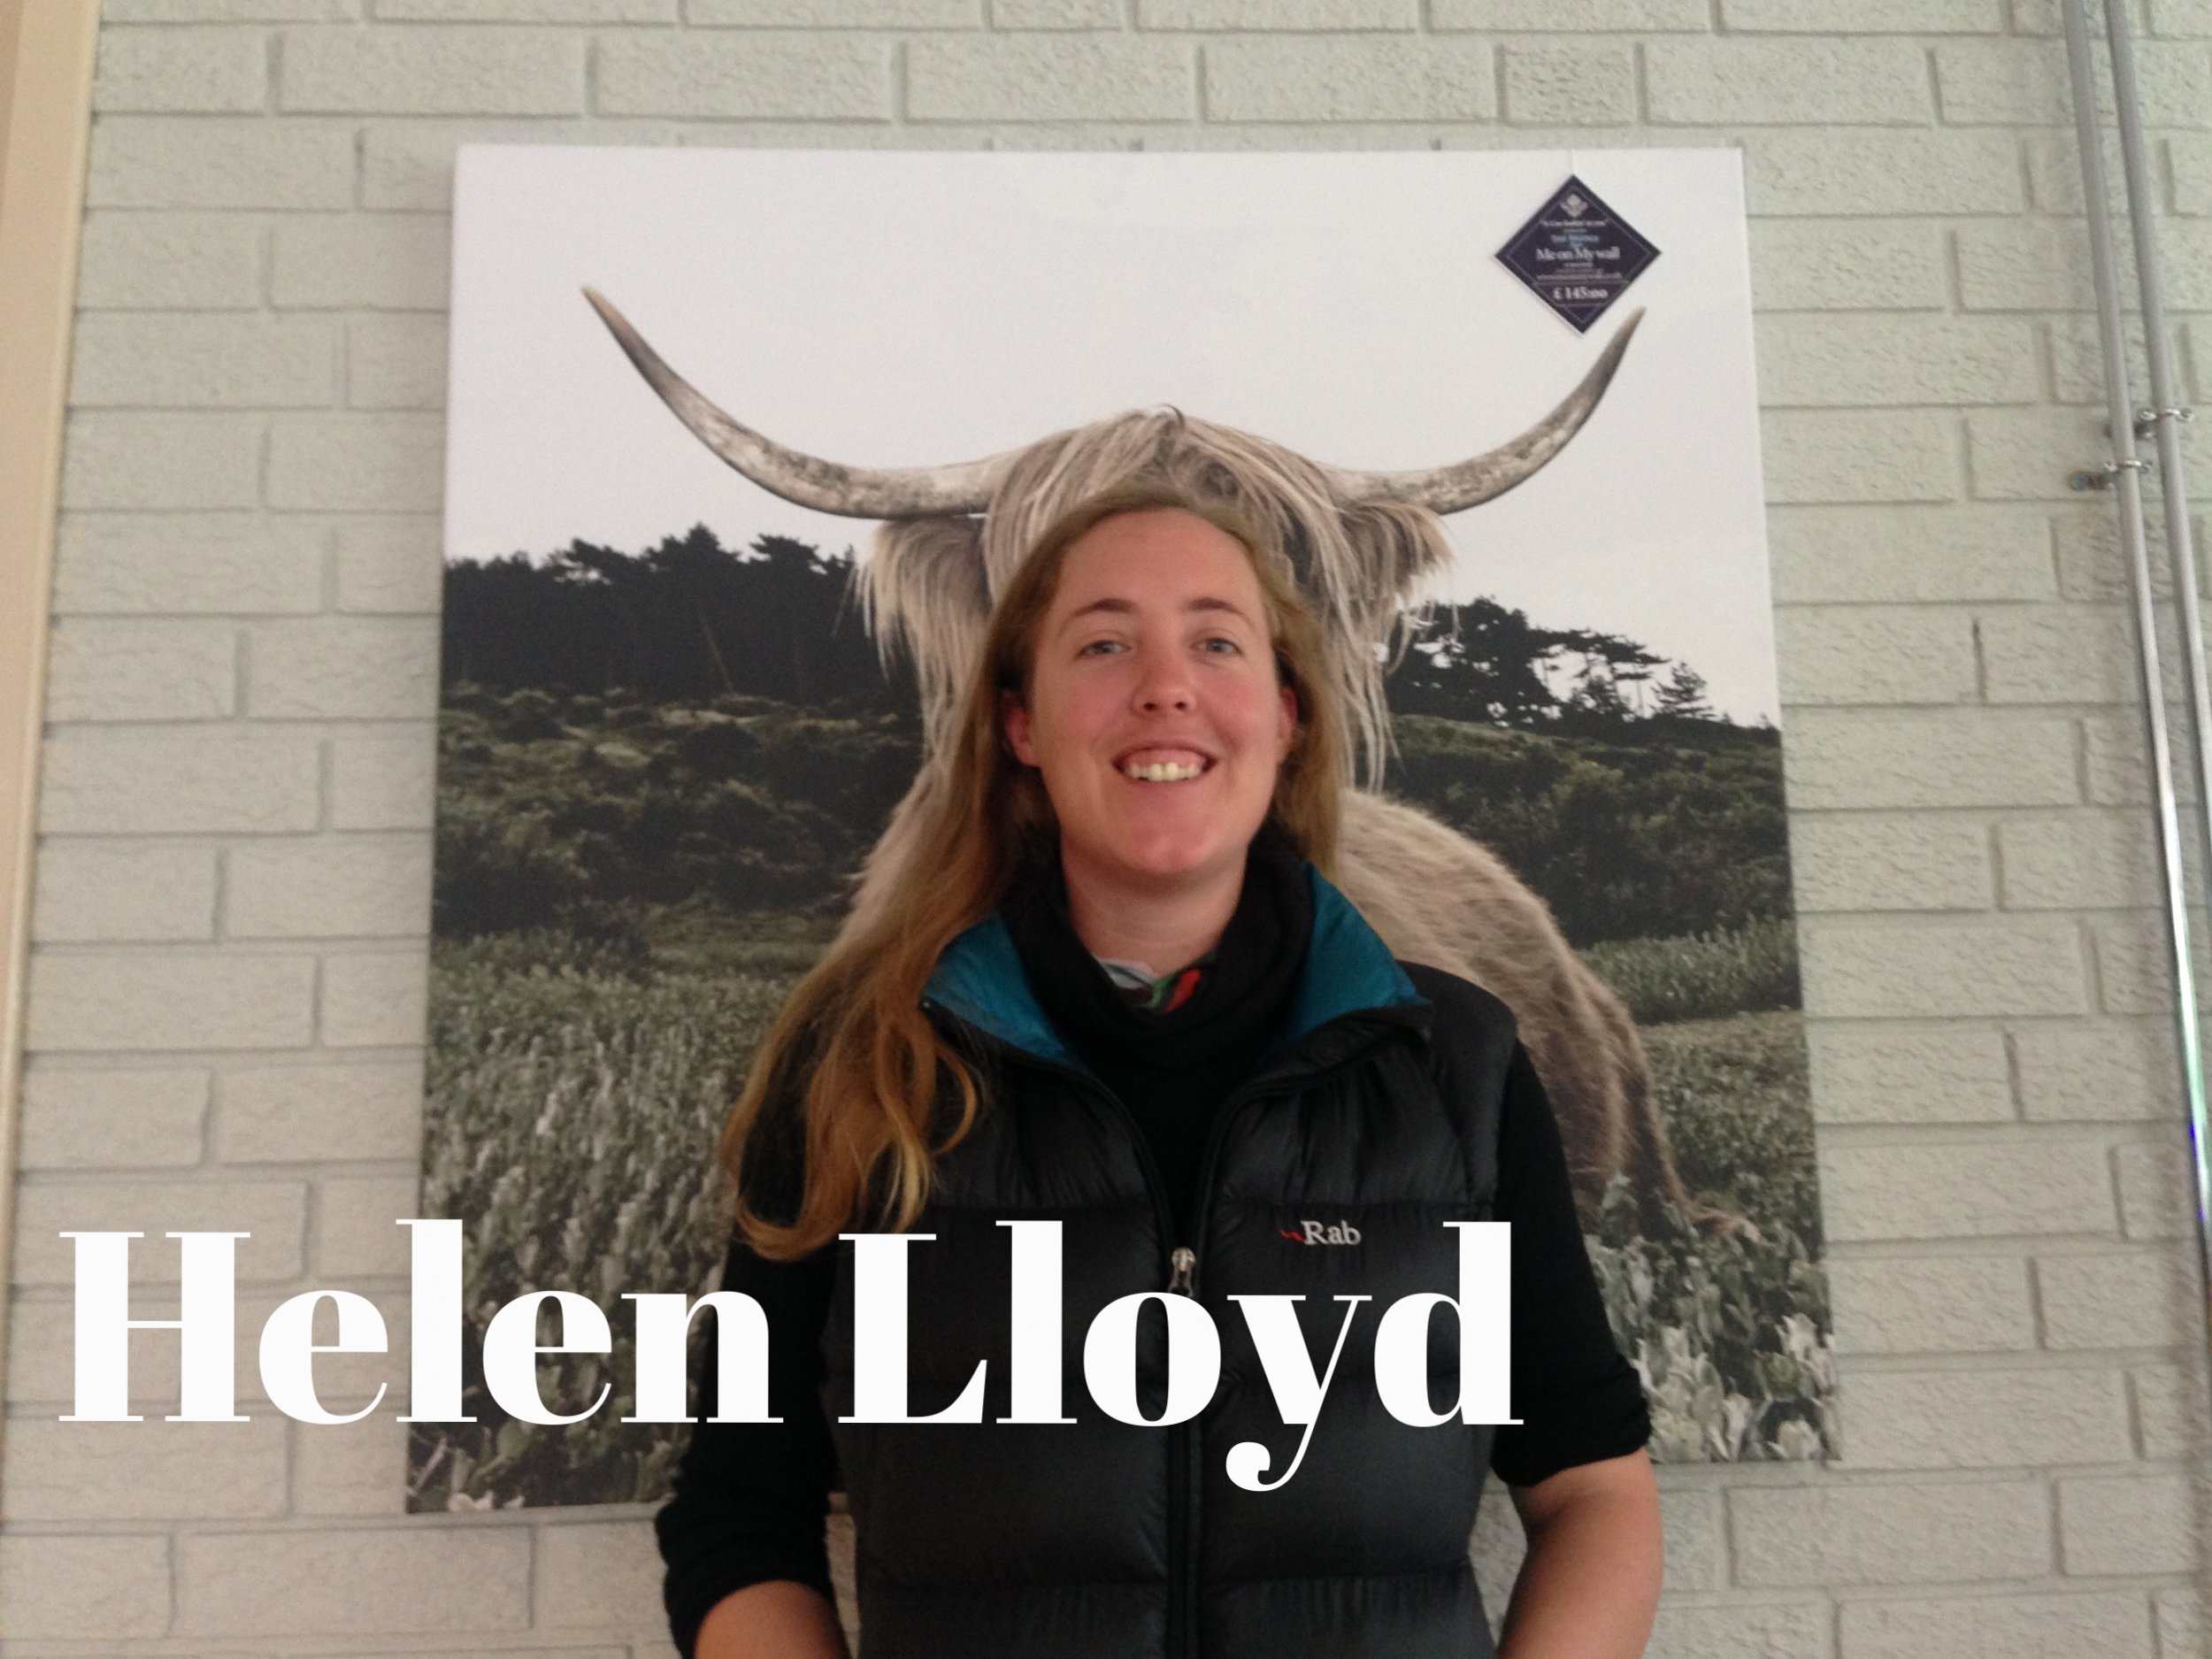 Helen Lloyd  says she's an engineer, but also writes books and spends most of her time doing other things... mostly in remote corners of the globe. Like cycling through Siberia in winter, packrafting in Nicaragua, horse-riding in Kyrgyzstan, and riding her motorbike across Africa. After a prolonged separation, she is now reacquainted with her mountain bike and wondering 'what next?